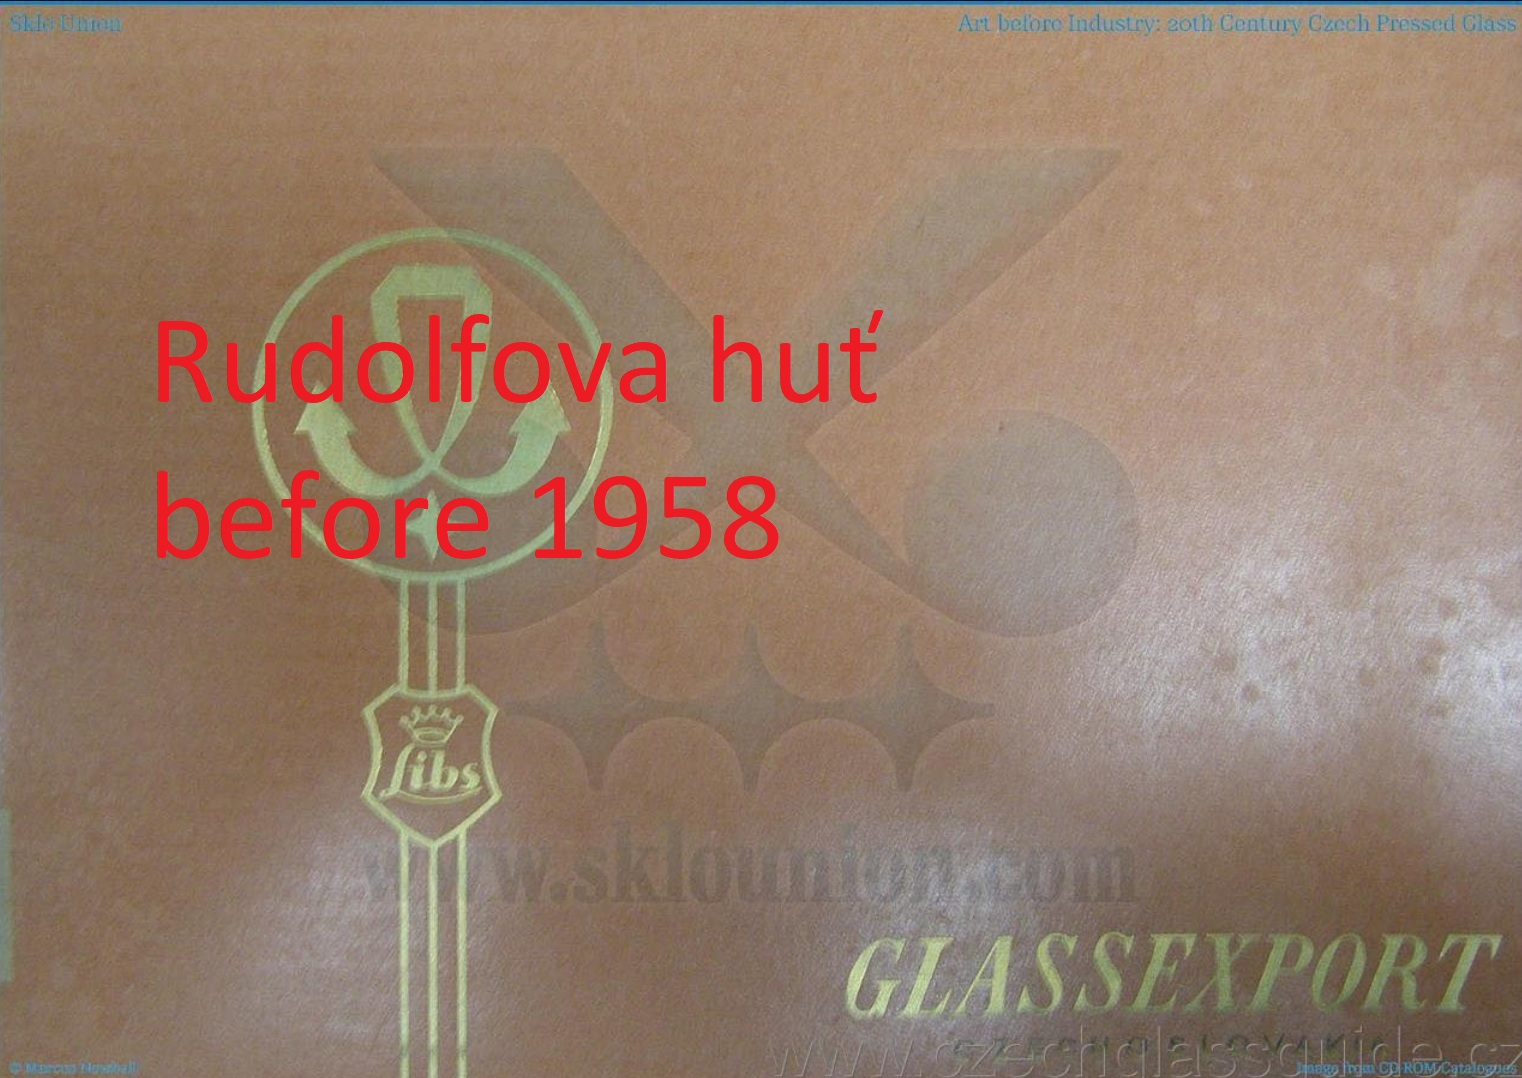 Rudolfova huť - Glassexport before 1958